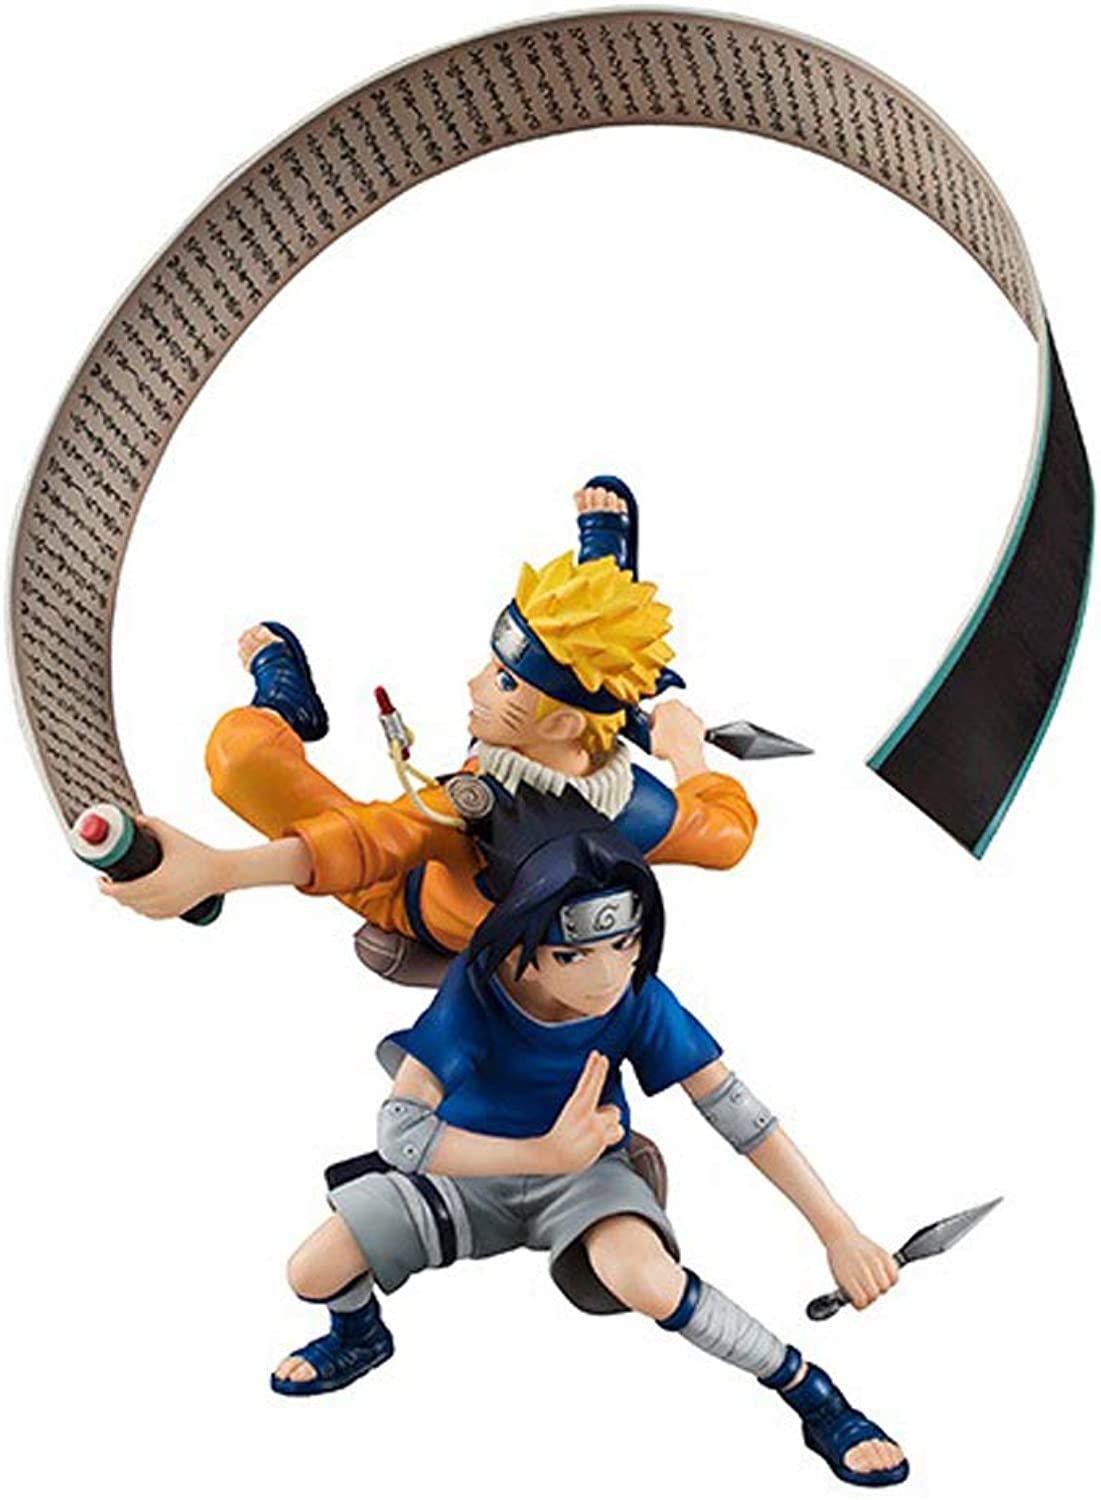 JSFQ Toy Statue Toy Model Anime Character Gift Crafts   18cm Anime Decoration Toy statue